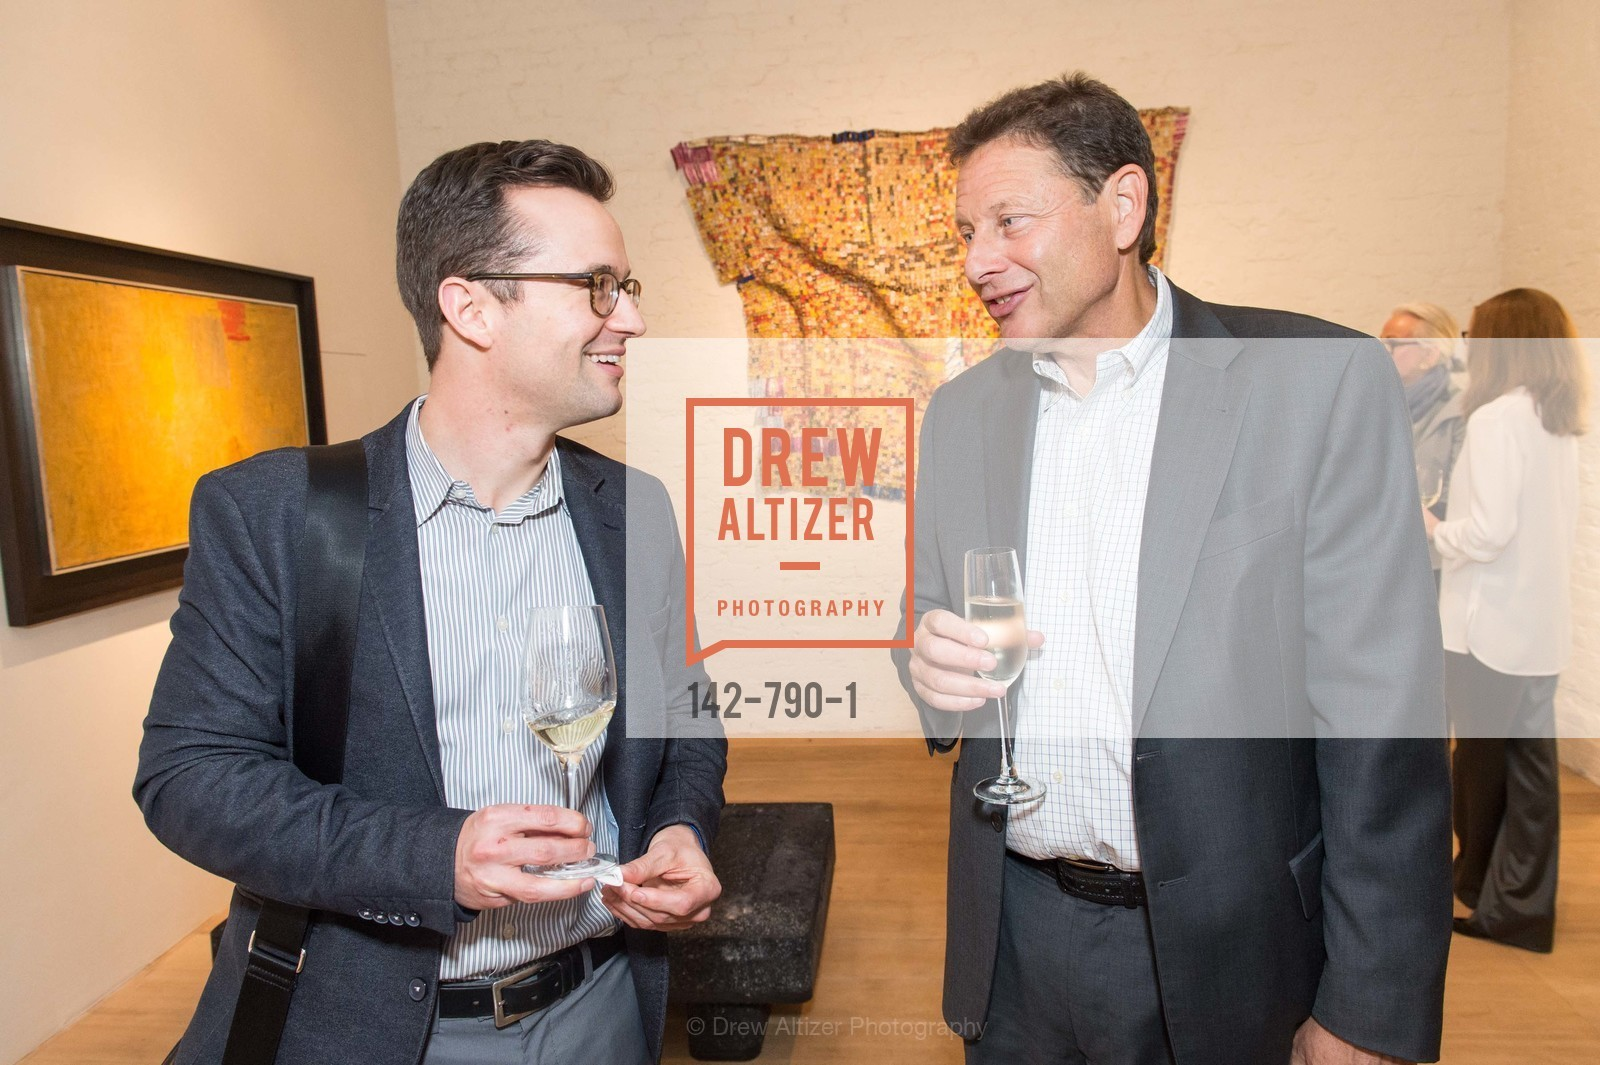 Chris Hurtabo, Philip Feldman, Post War and Contemporary Preview at HEDGE GALLERY, US, April 16th, 2015,Drew Altizer, Drew Altizer Photography, full-service agency, private events, San Francisco photographer, photographer california